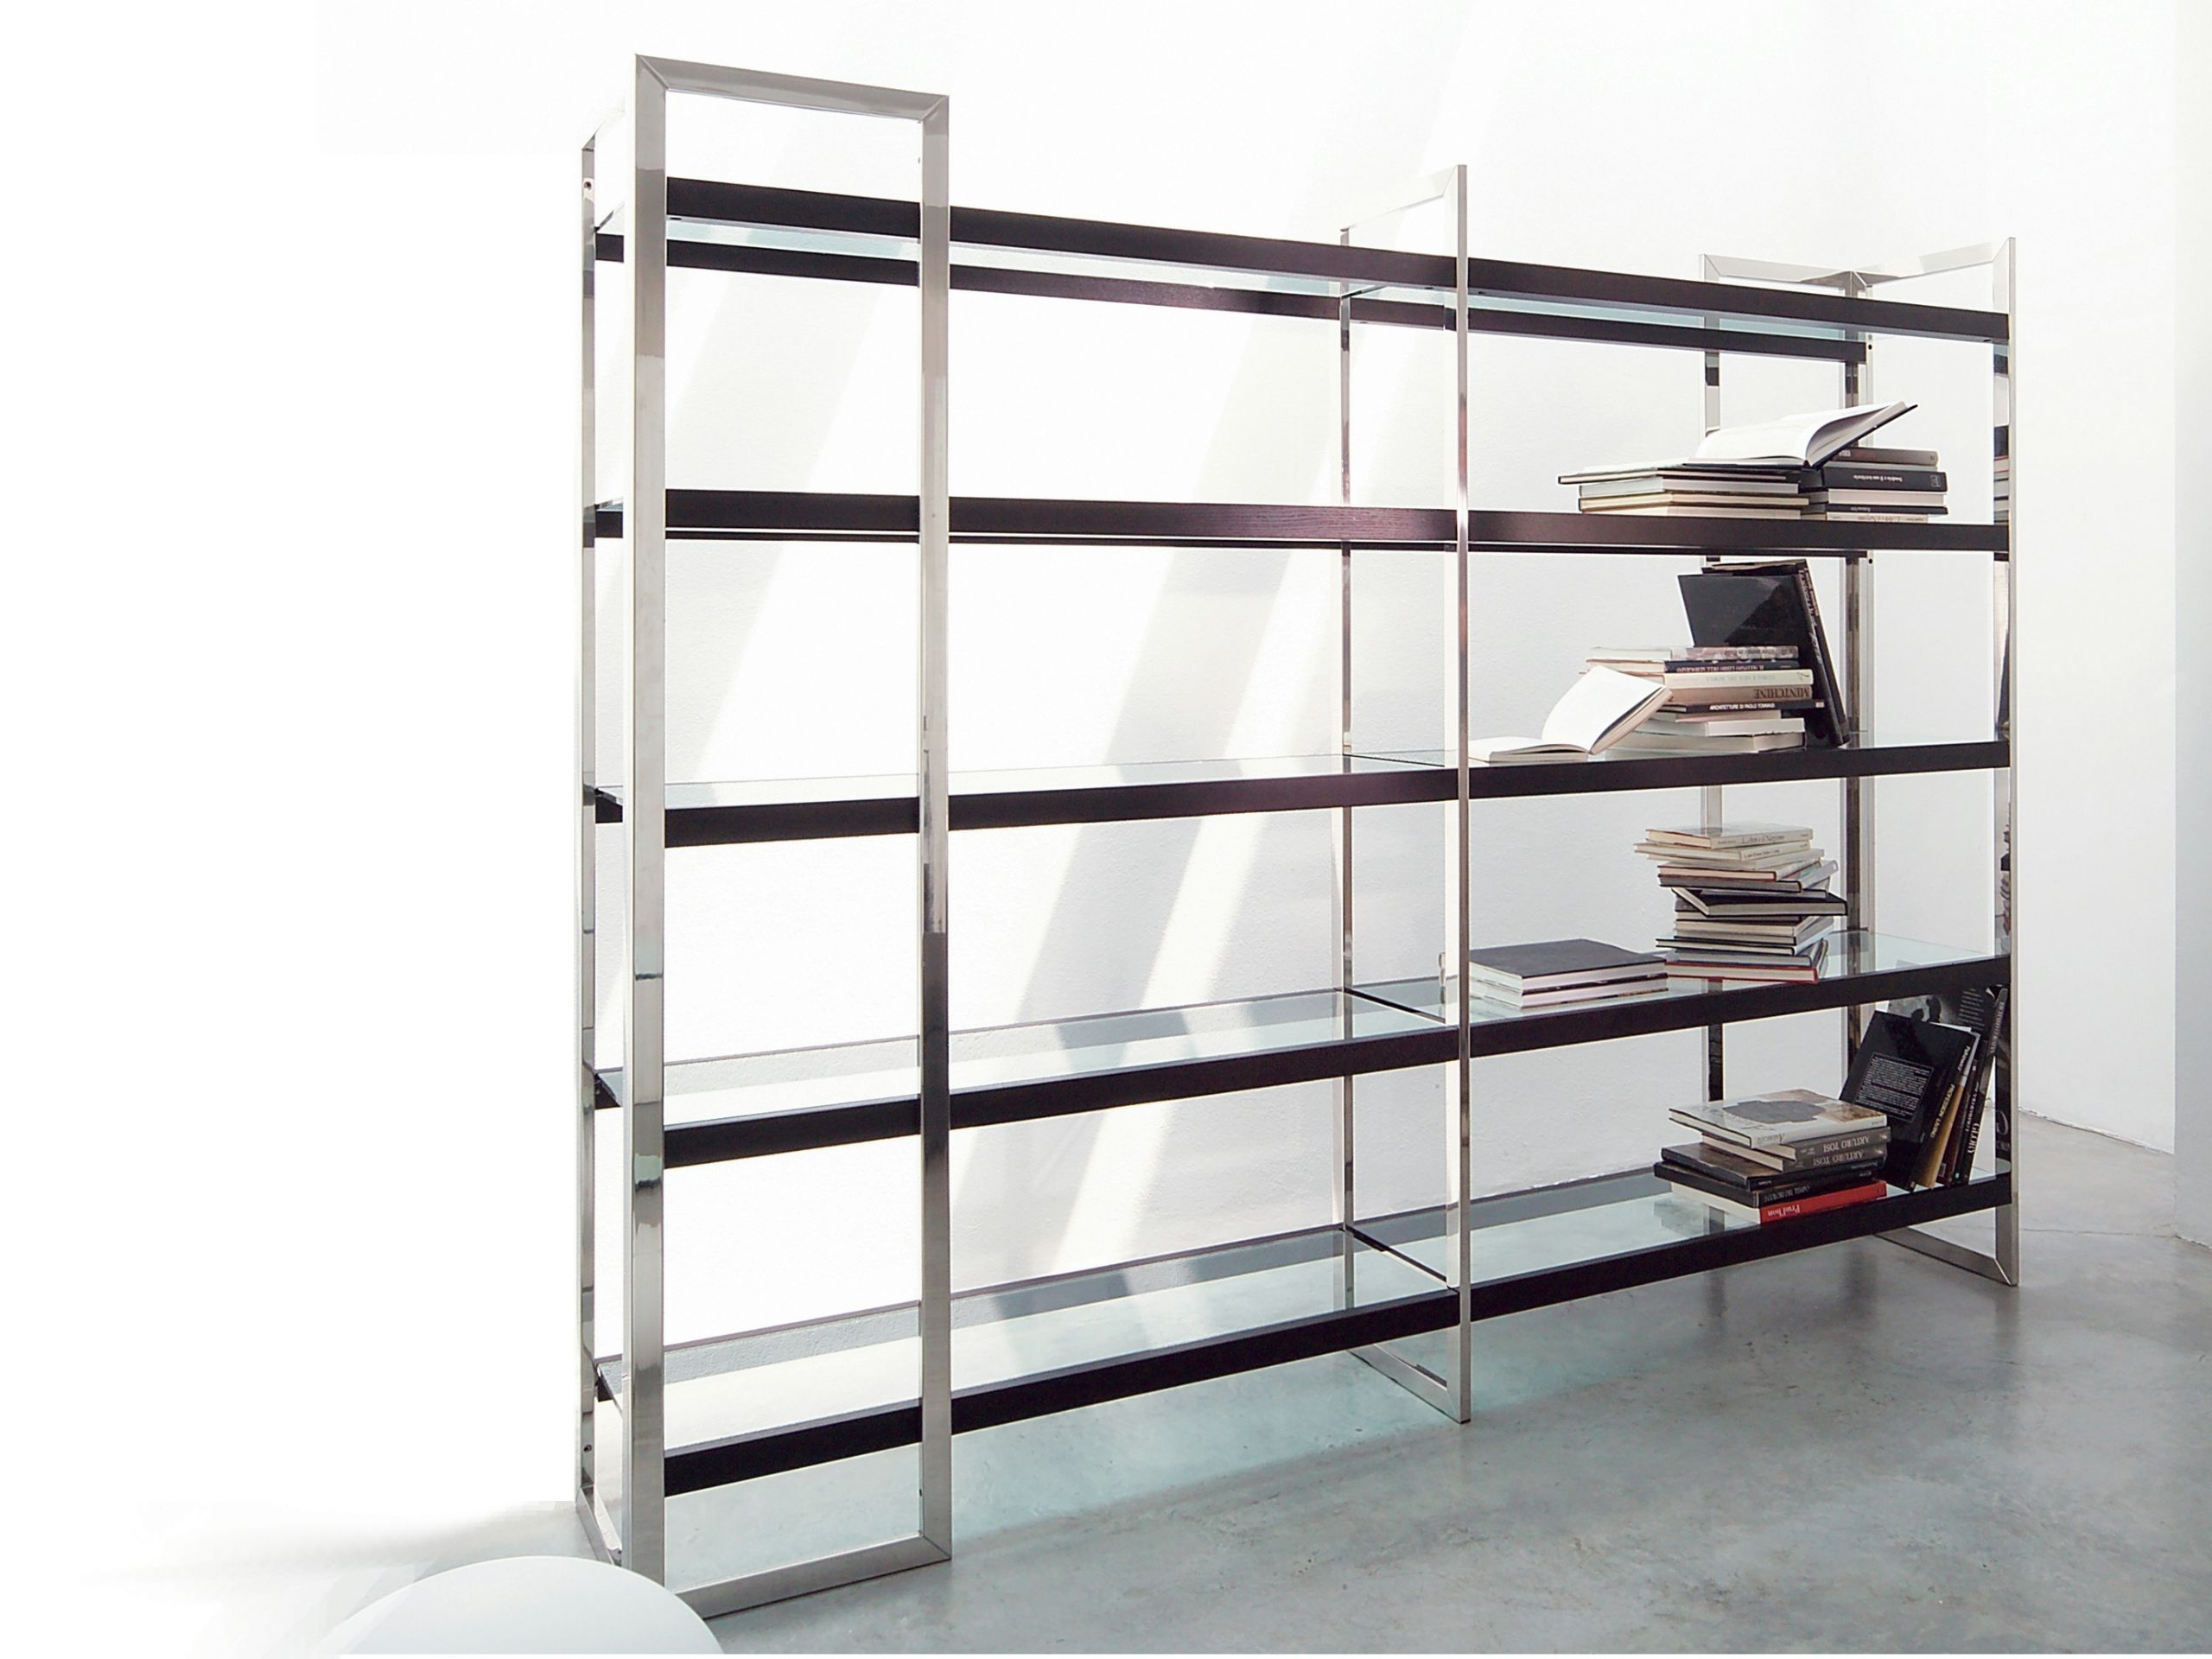 Stainless Steel Bookcase DIPSY By Gallottiu0026Radice